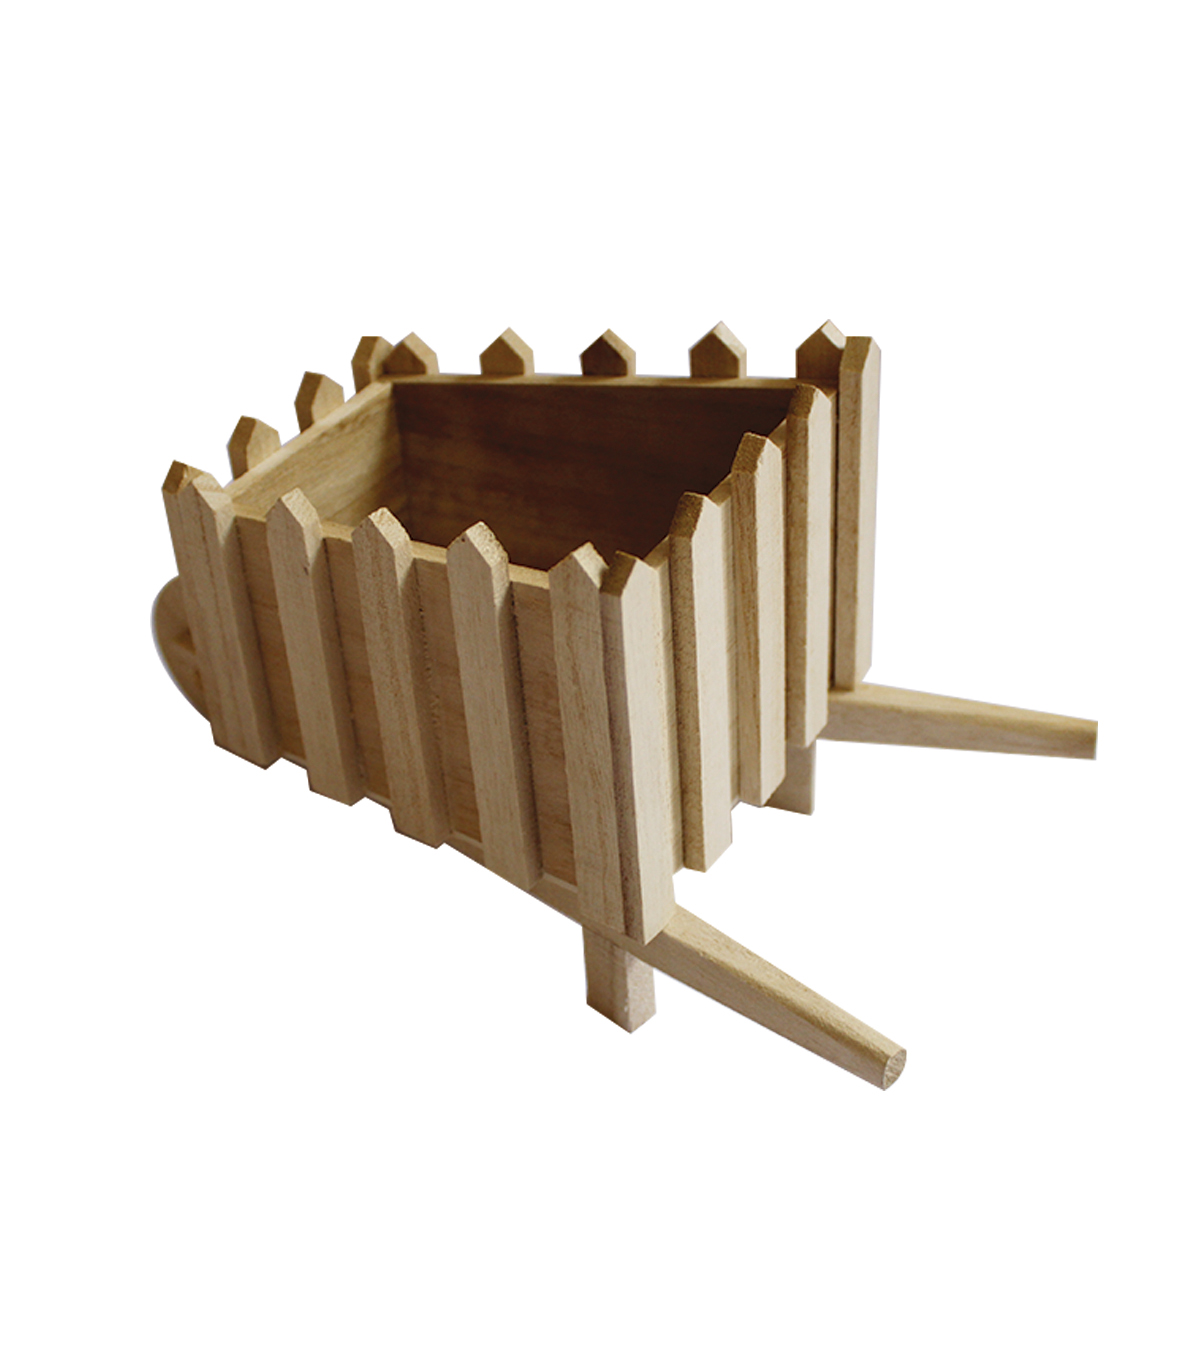 Paulownia Wood Furniture 3D Wheelbarrow